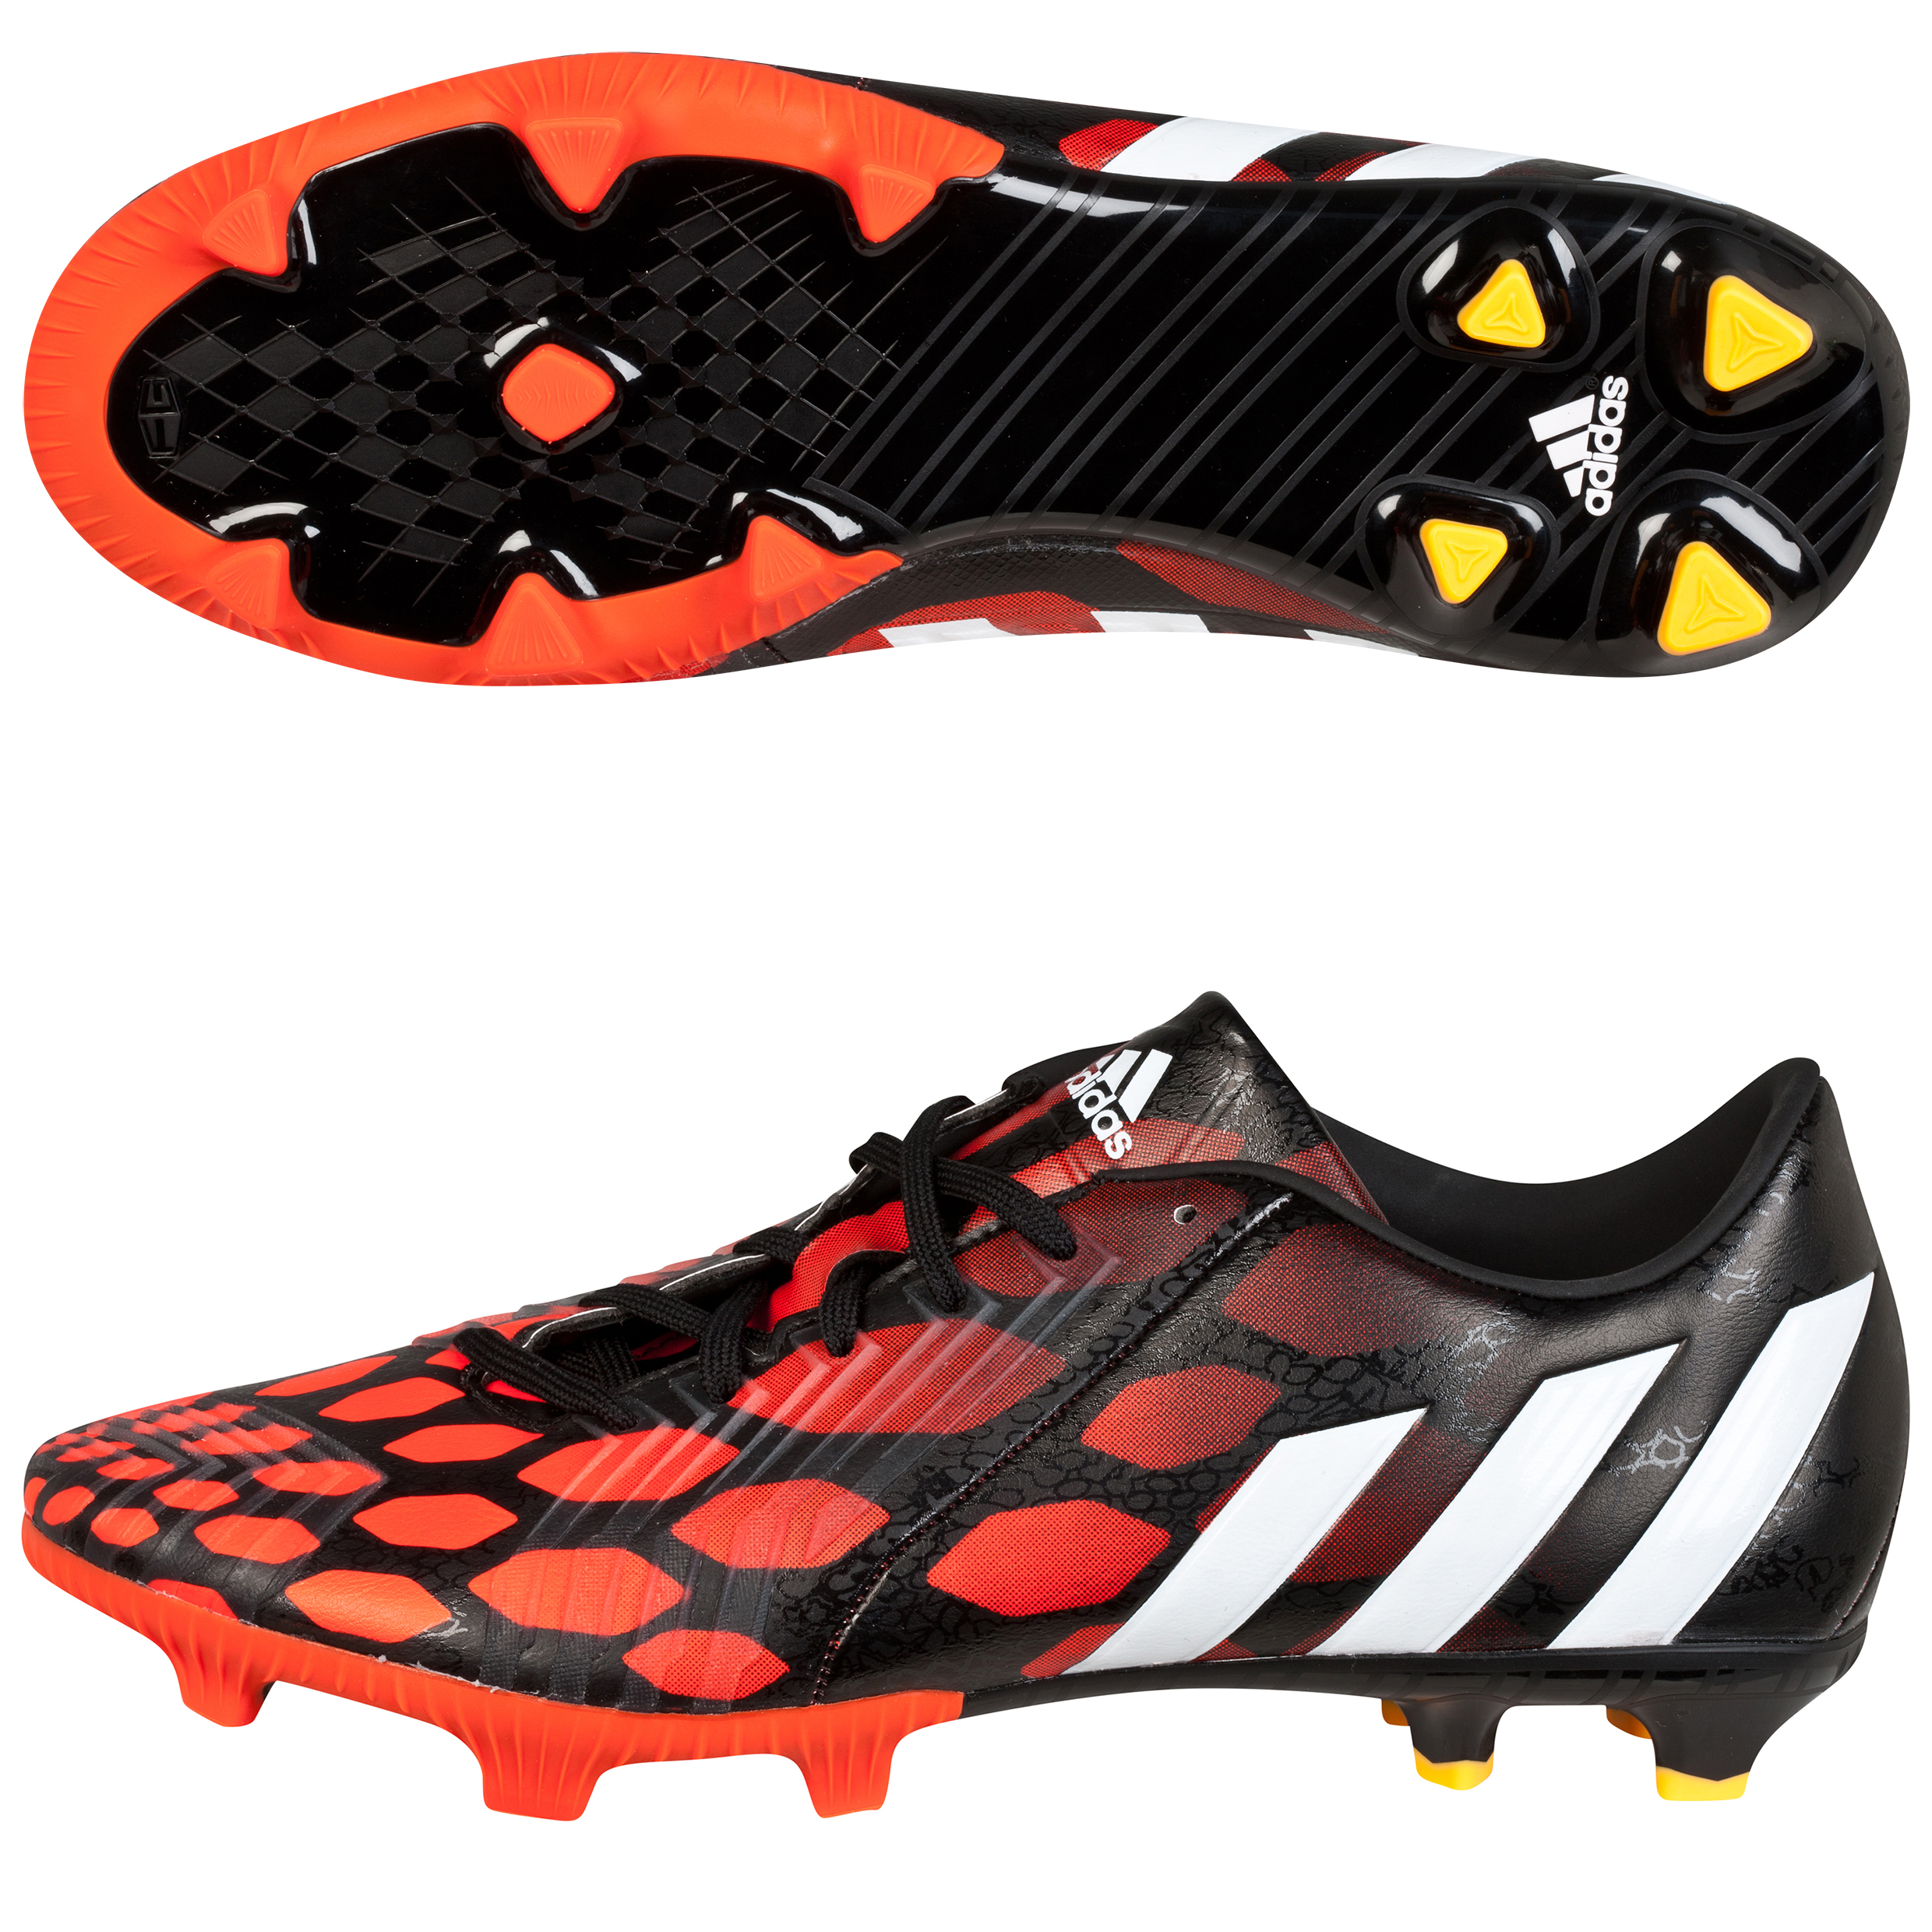 Adidas Predator Absolion LZ Firm Ground Football Boots Black